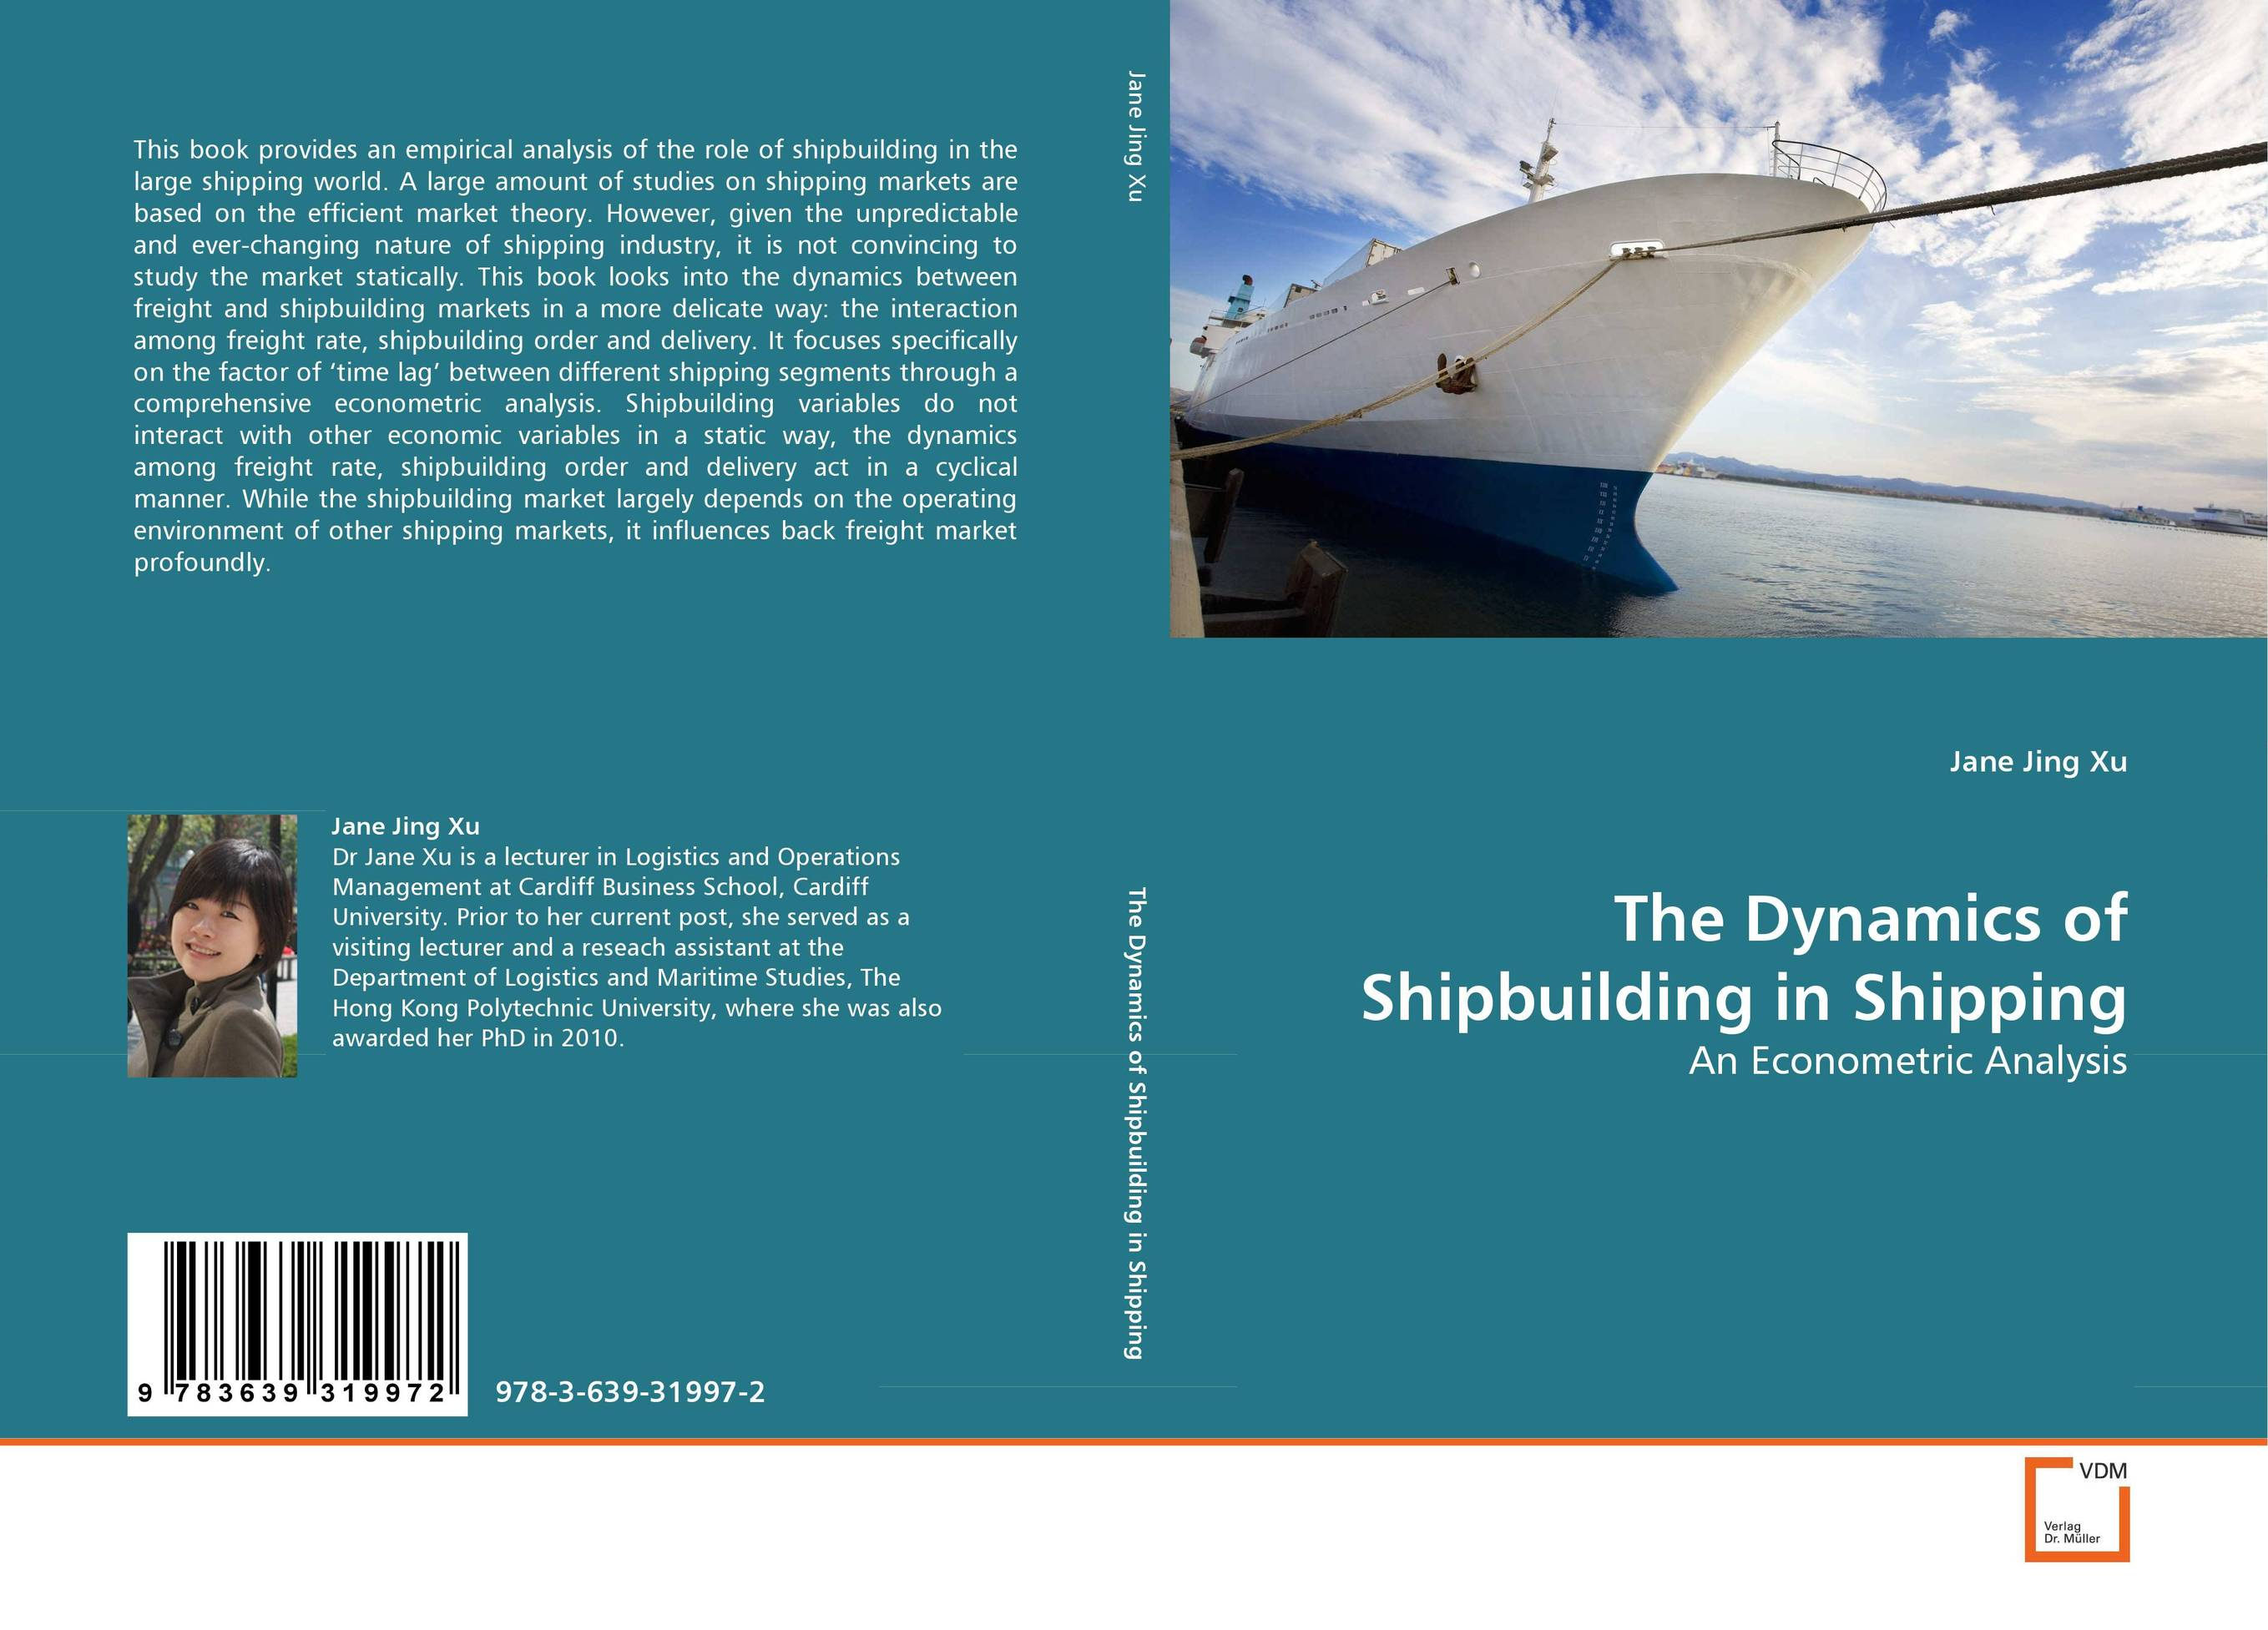 The Dynamics of Shipbuilding in Shipping